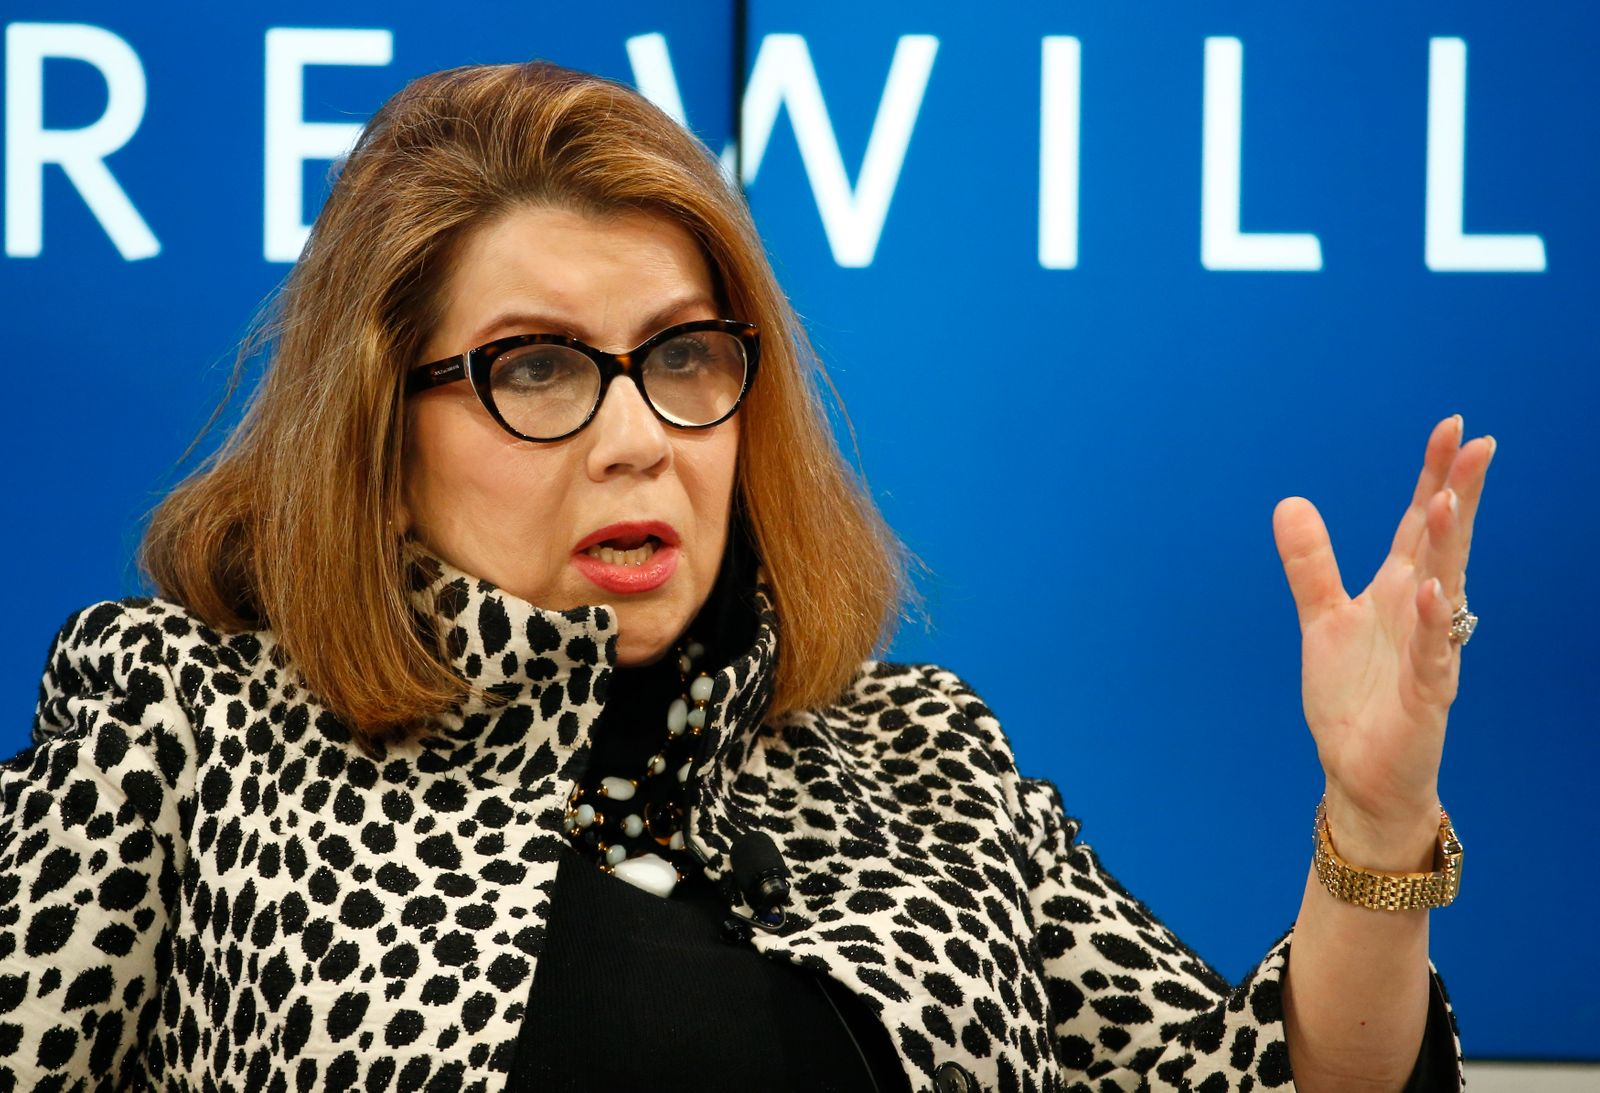 Reinhart Professor of the International Financial System at Harvard Kennedy School attends the WEF annual meeting in Davos